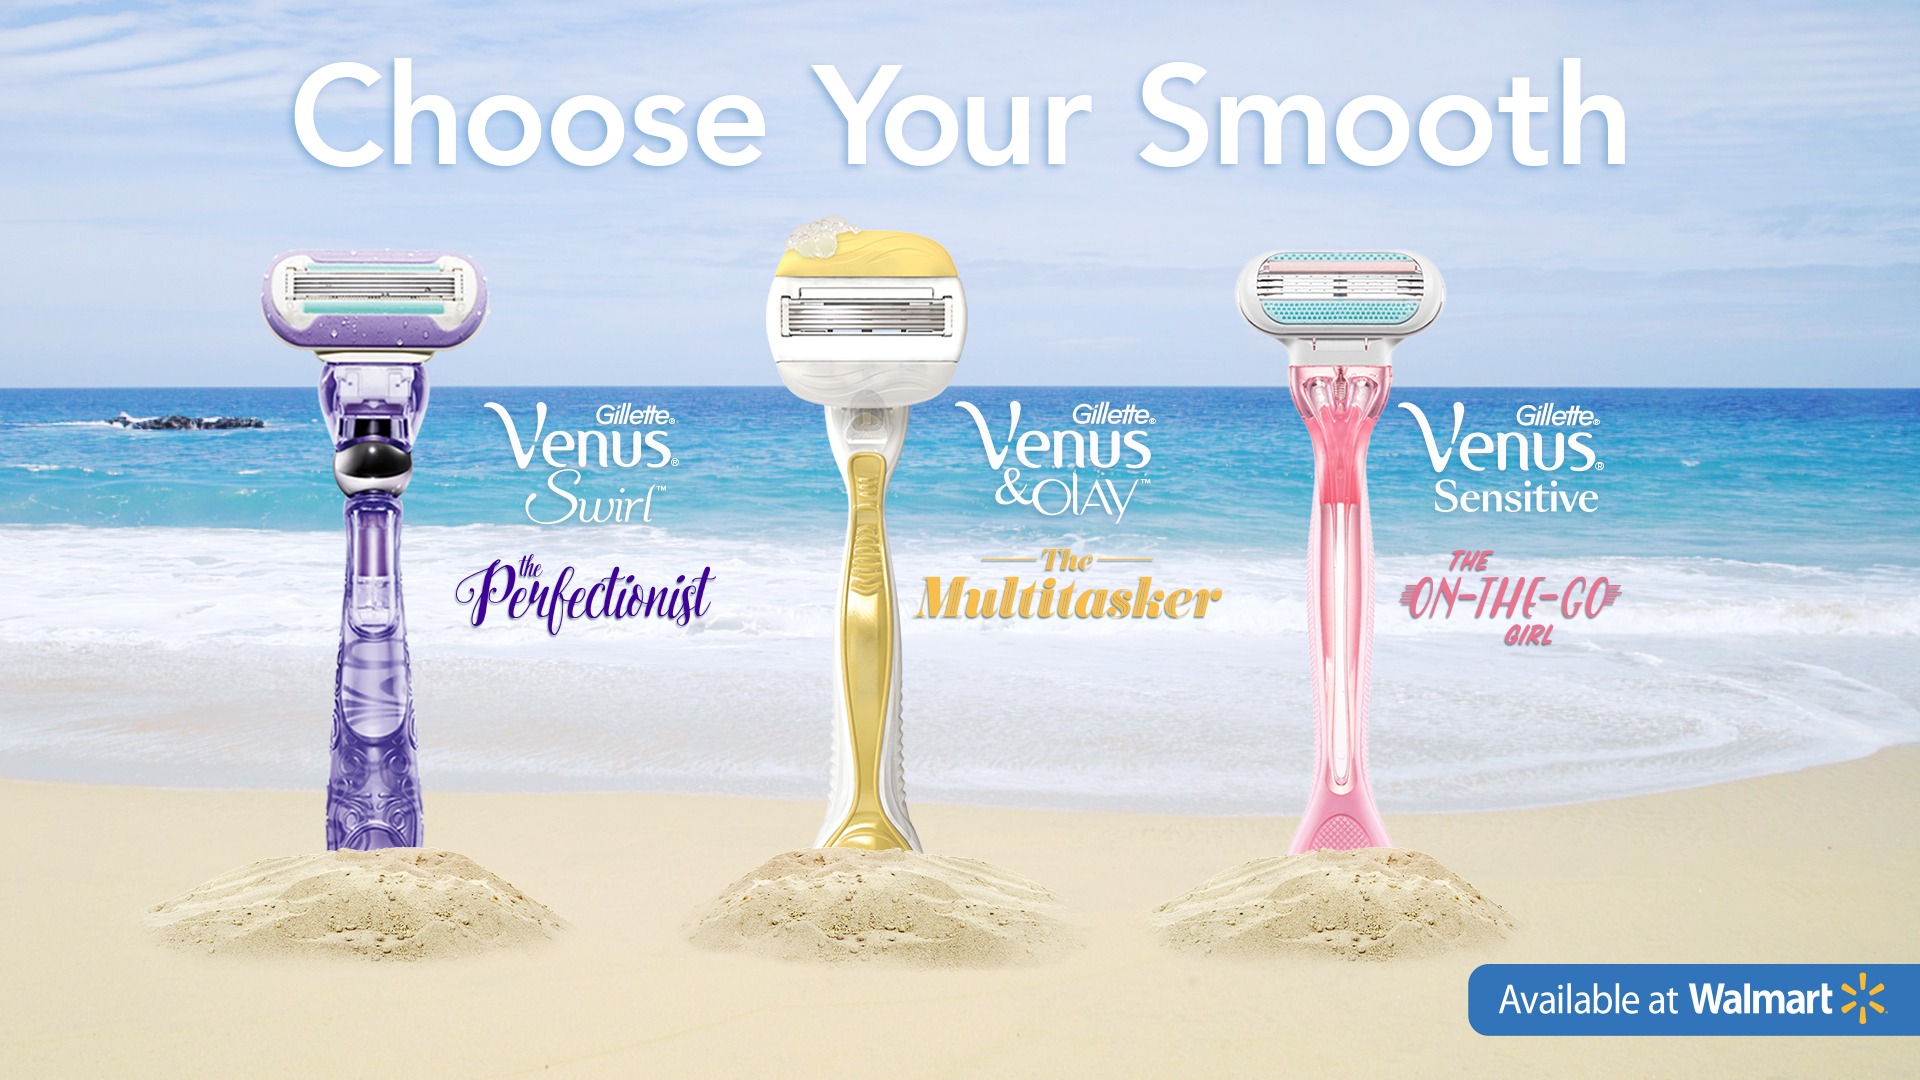 Choose Your Smooth